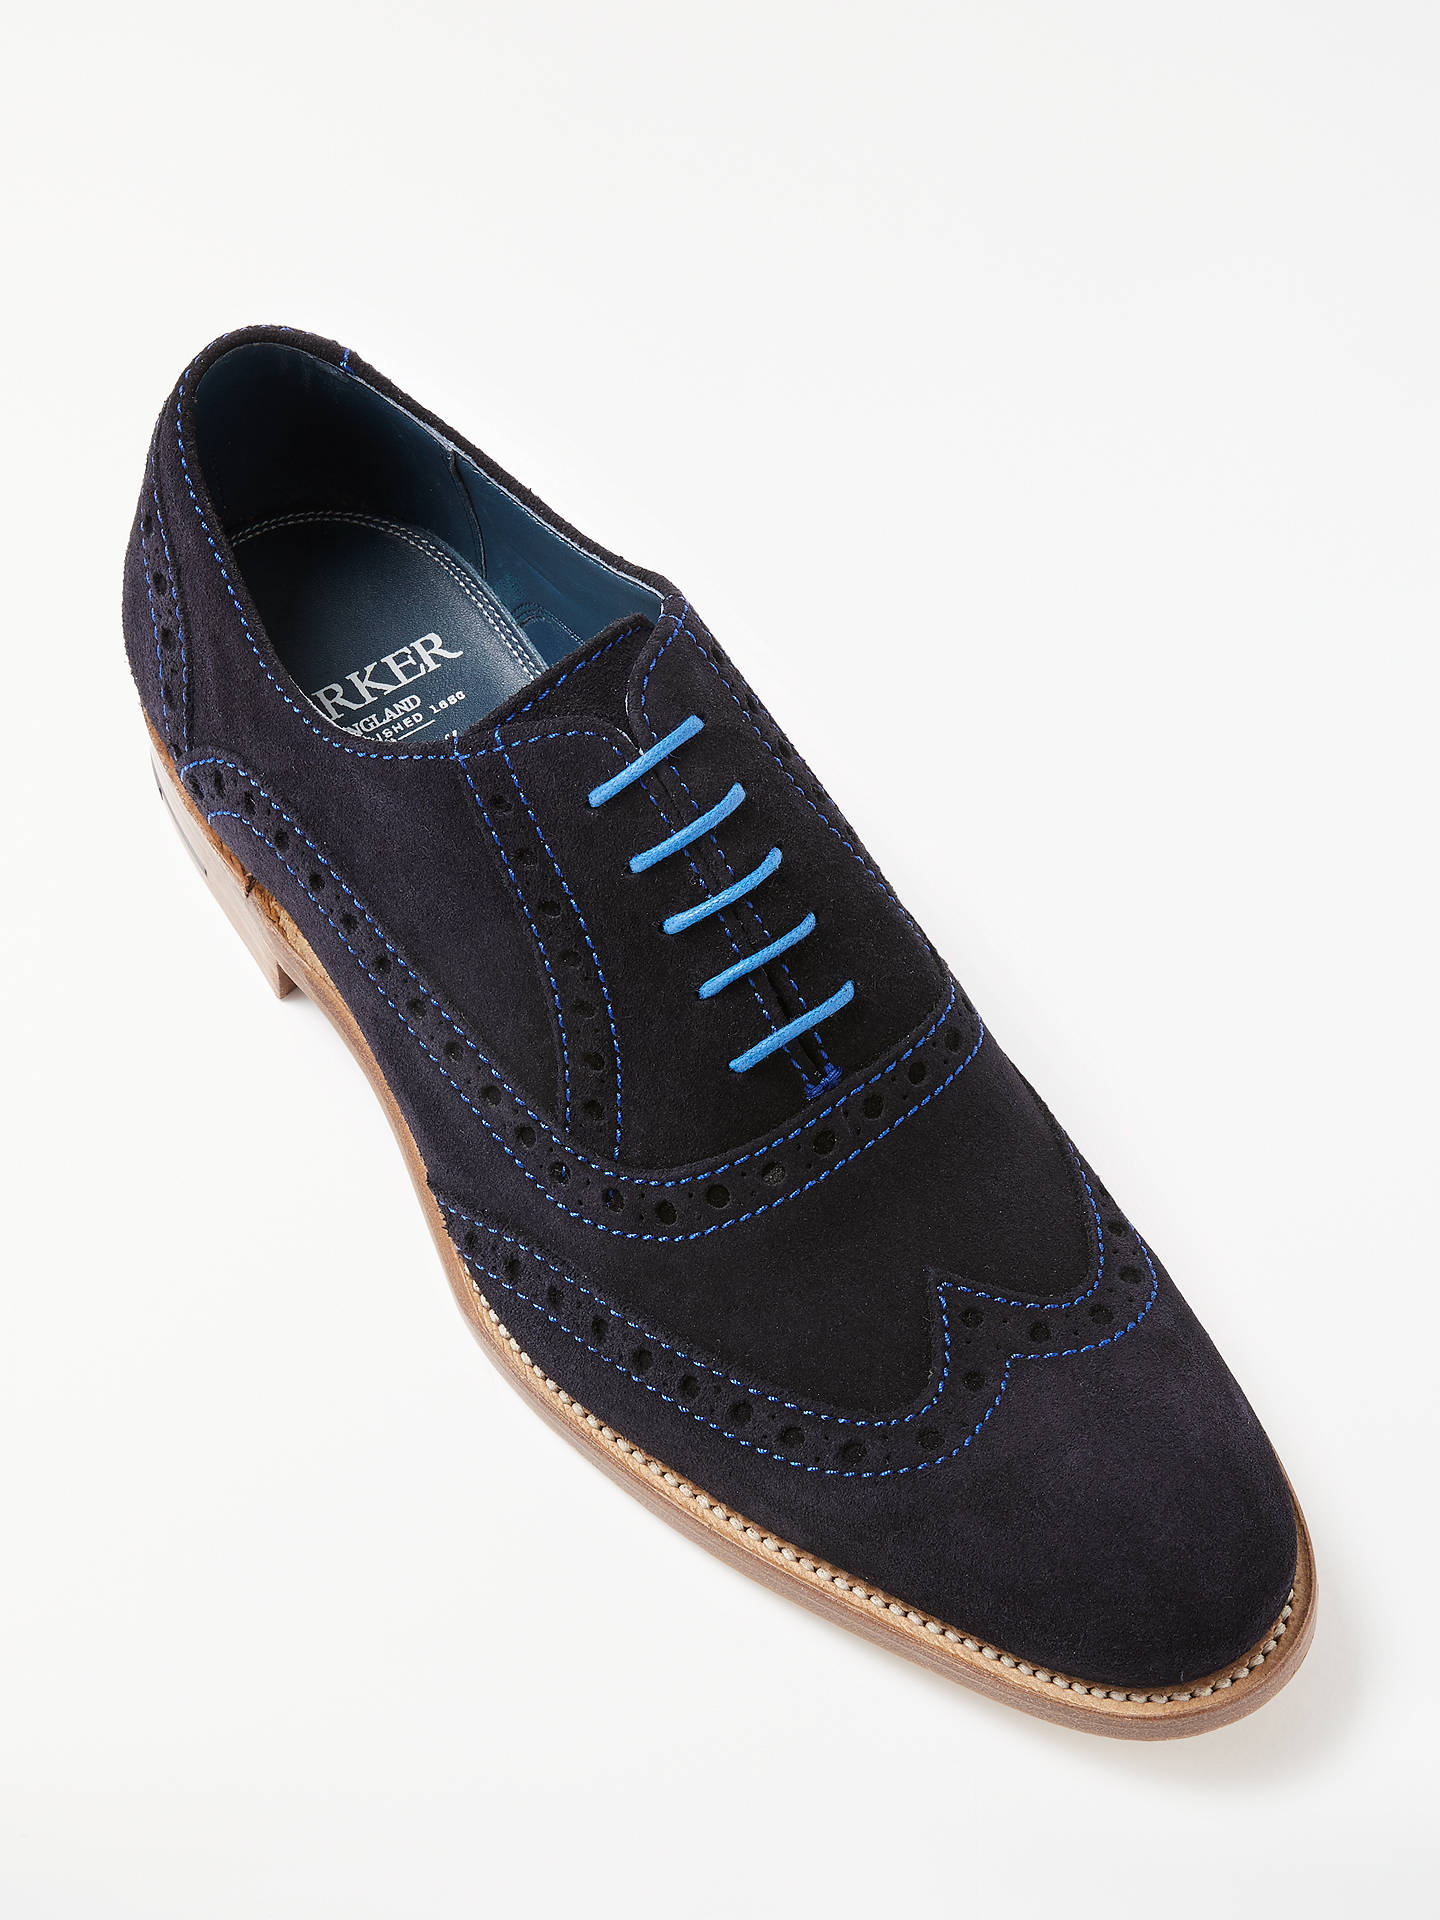 6bbe2d101ed5b ... Buy Barker Grant Suede Brogue Shoes, Dark Navy, 7 Online at  johnlewis.com